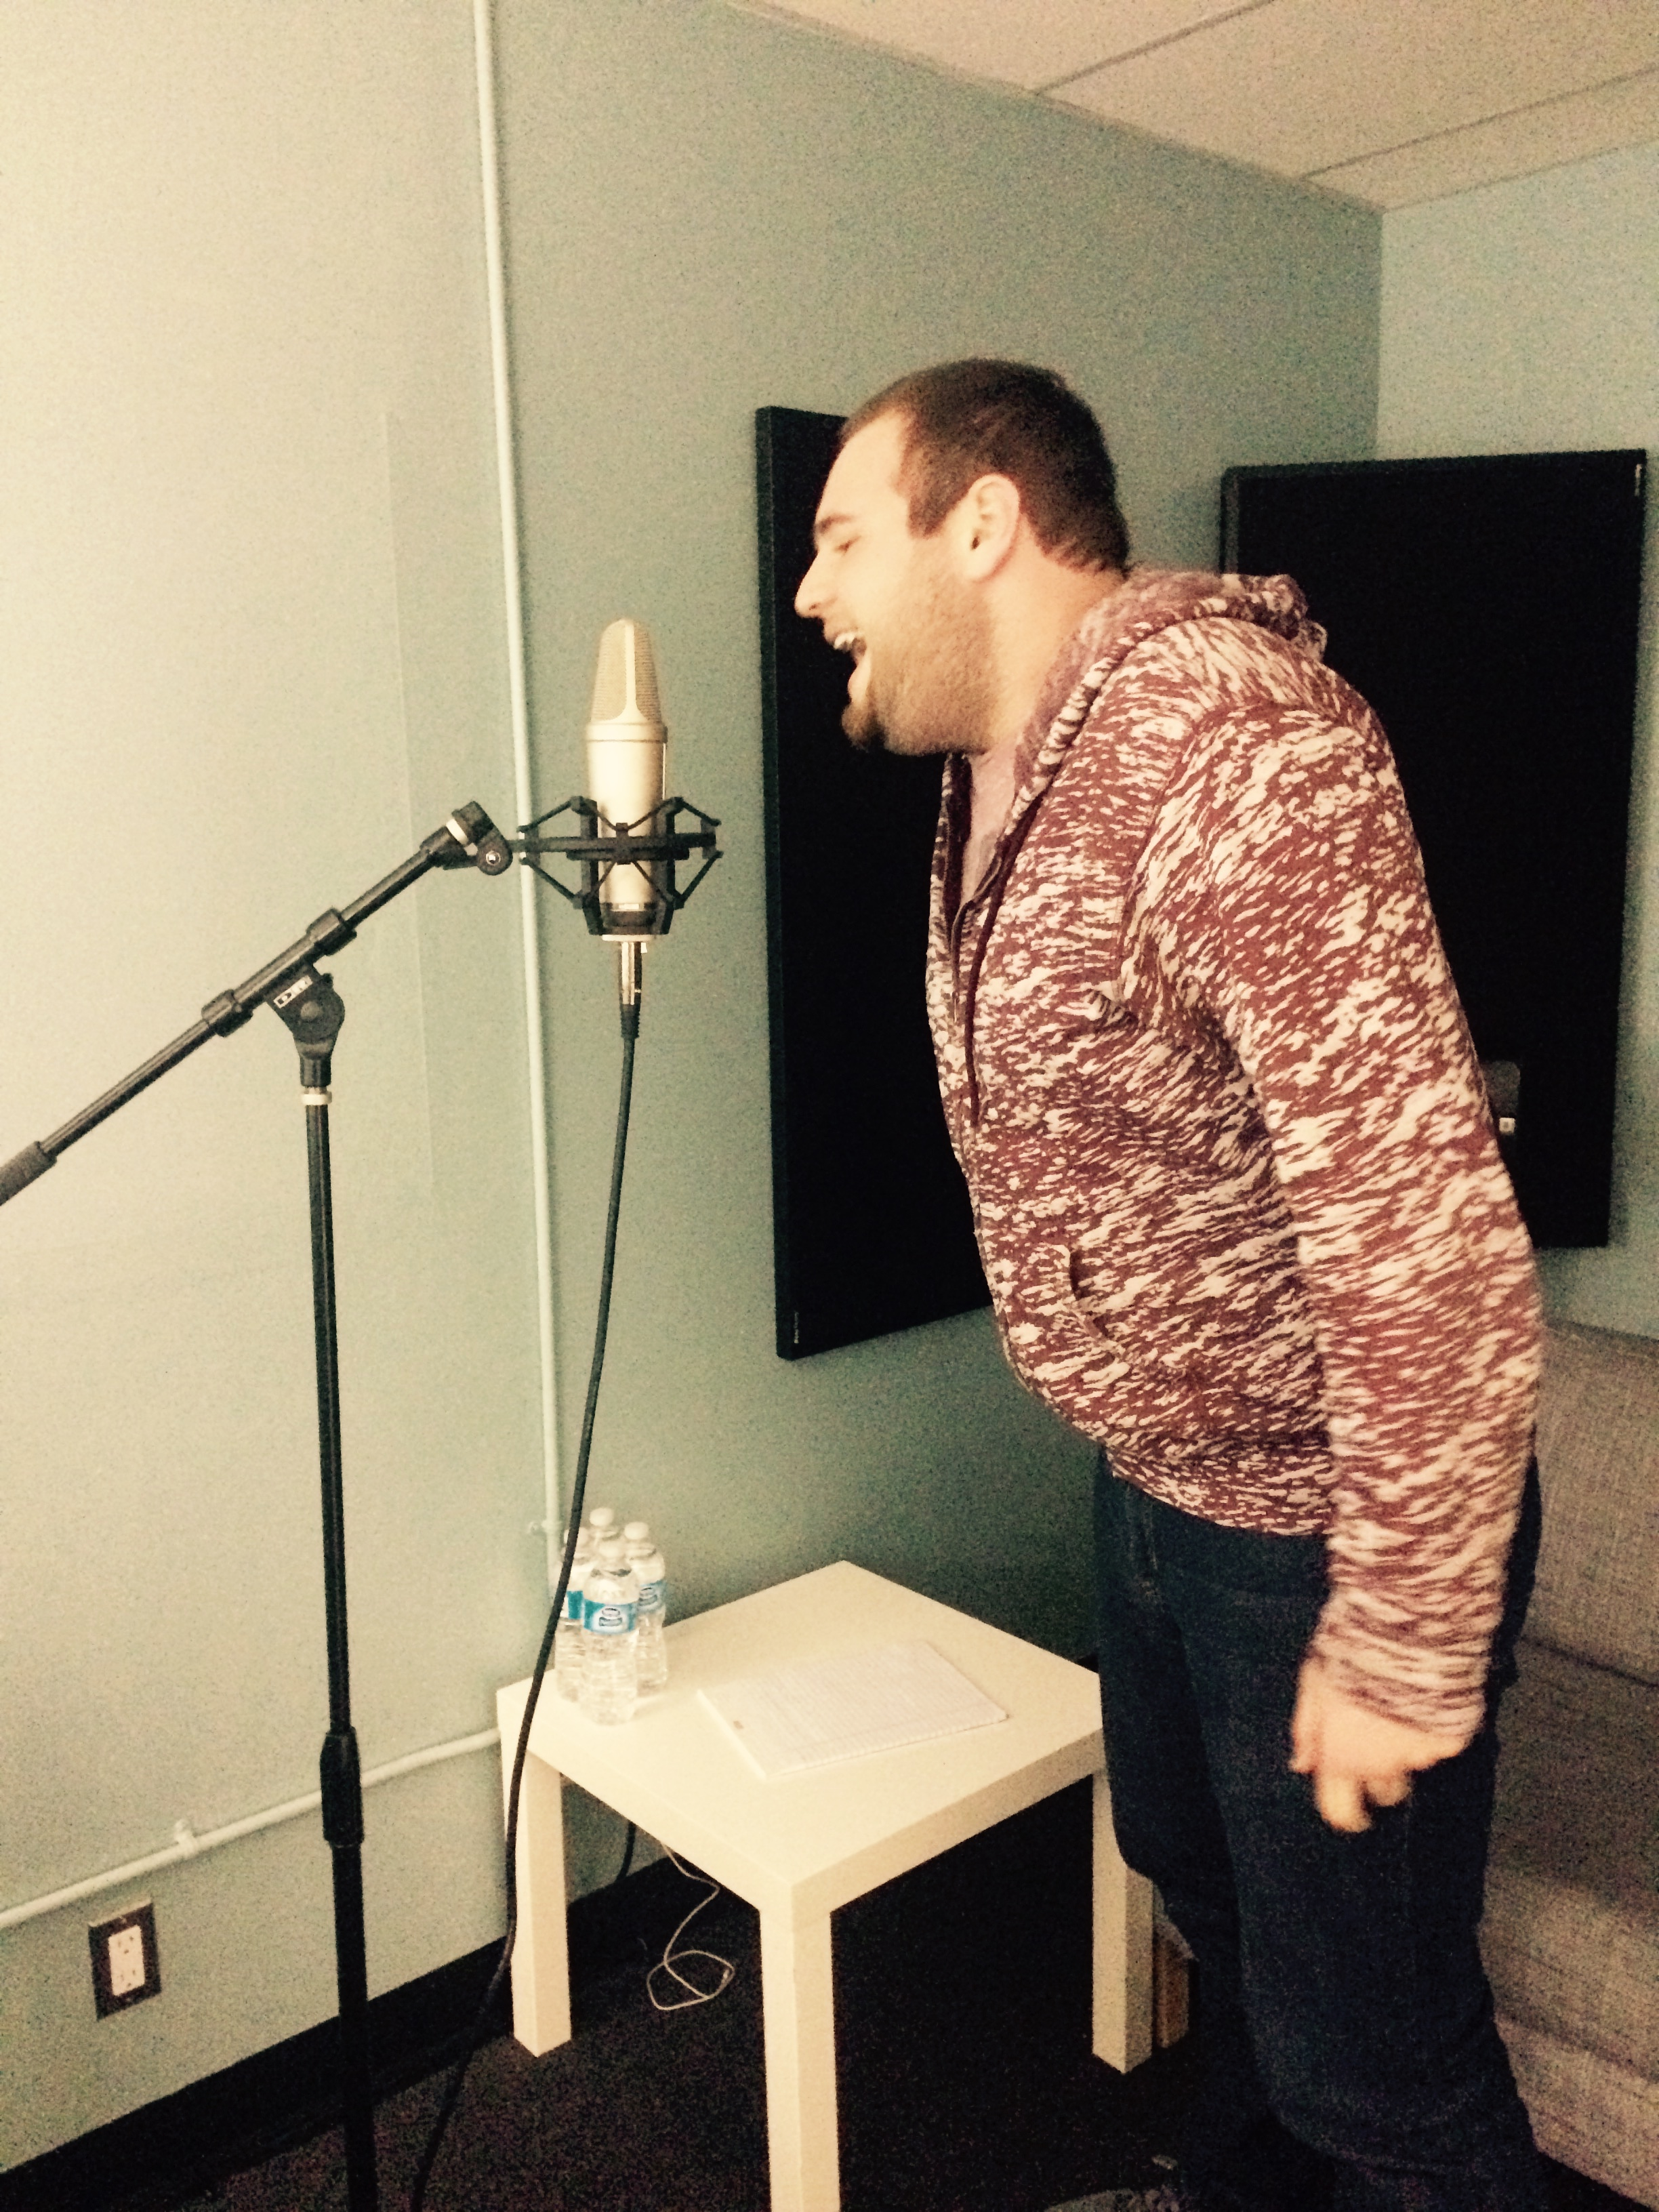 Brad lends his talent for screeching to the project.